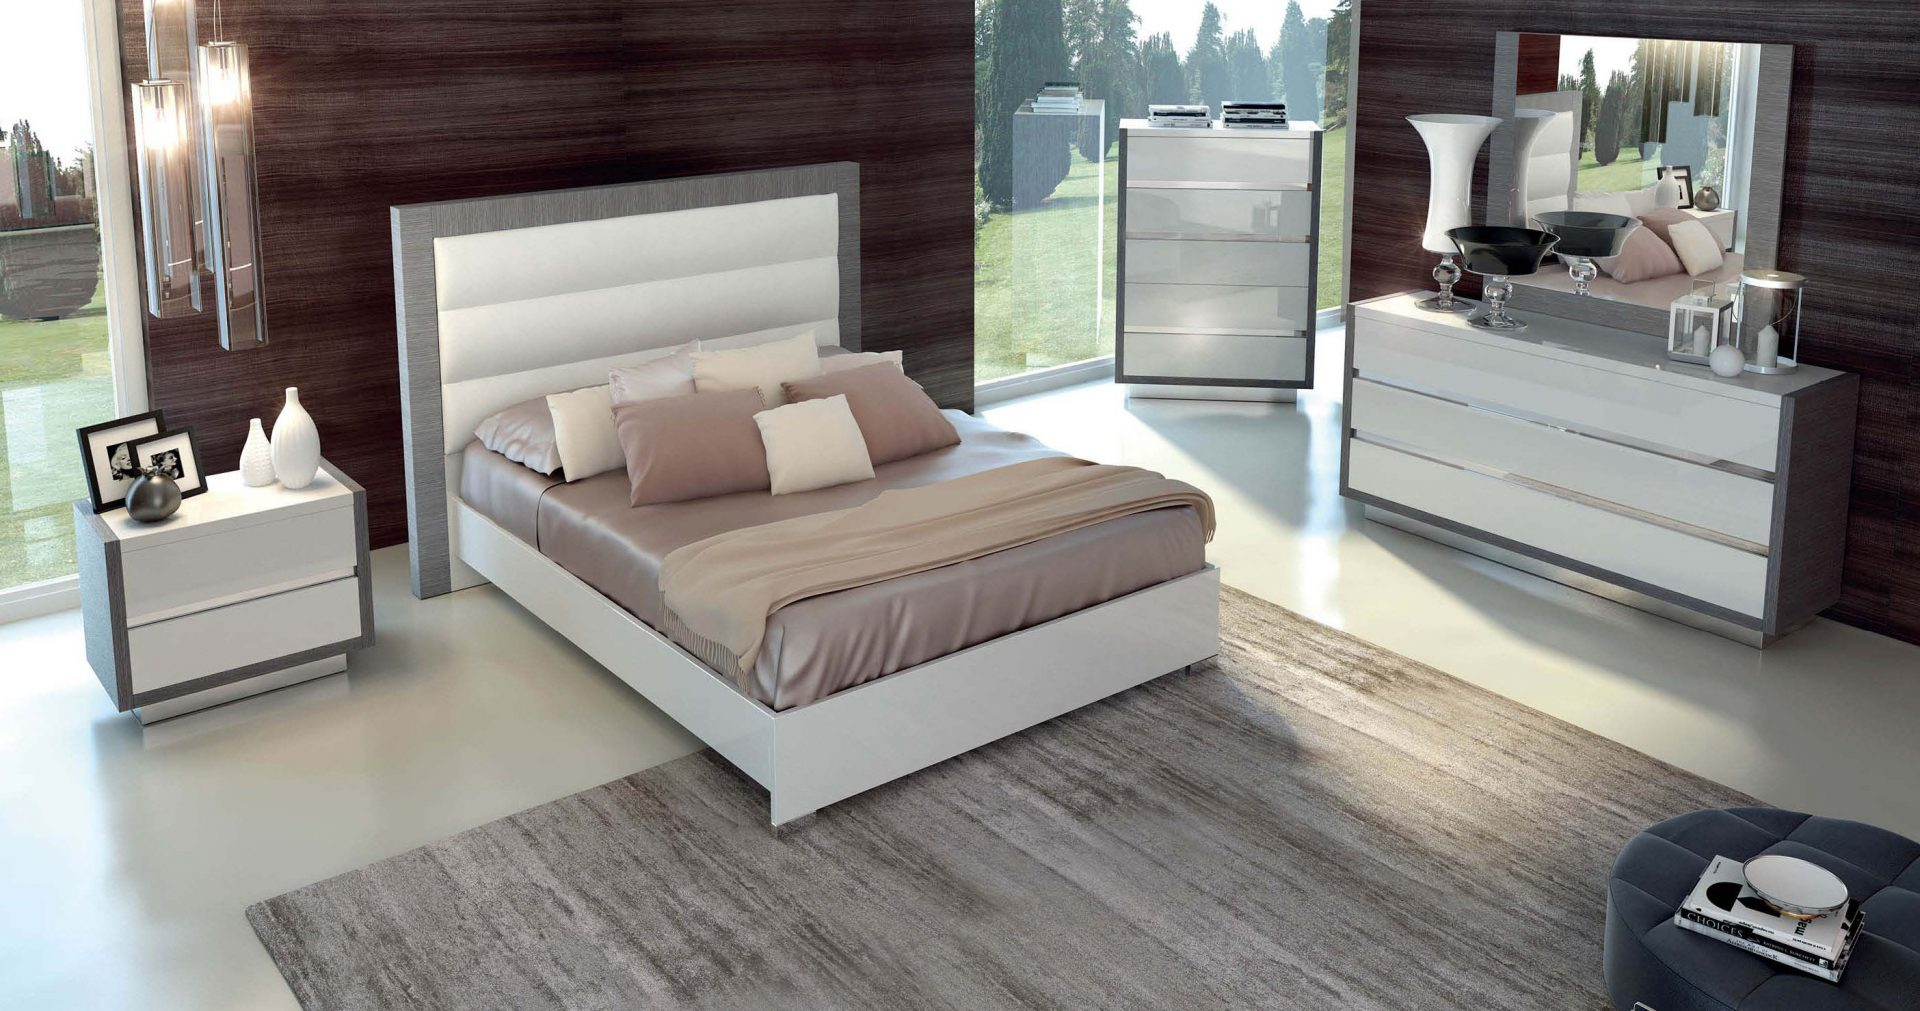 Modern bedroom set elegance decor for International decor outlet jacksonville